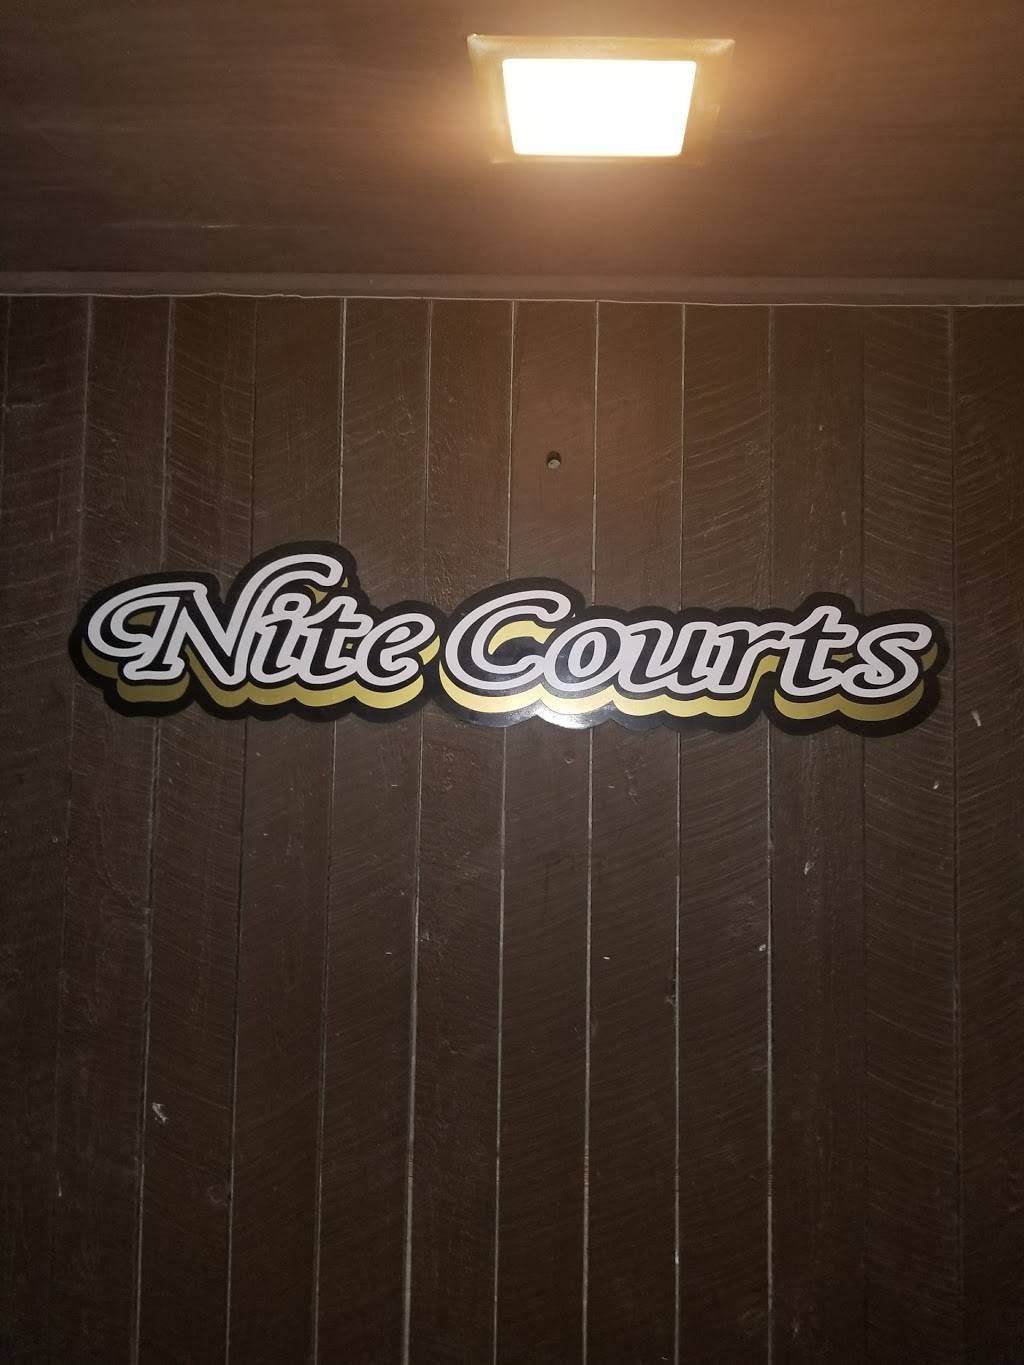 Nite Courts | night club | 403 Main St, Ford City, PA 16226, USA | 7247637199 OR +1 724-763-7199